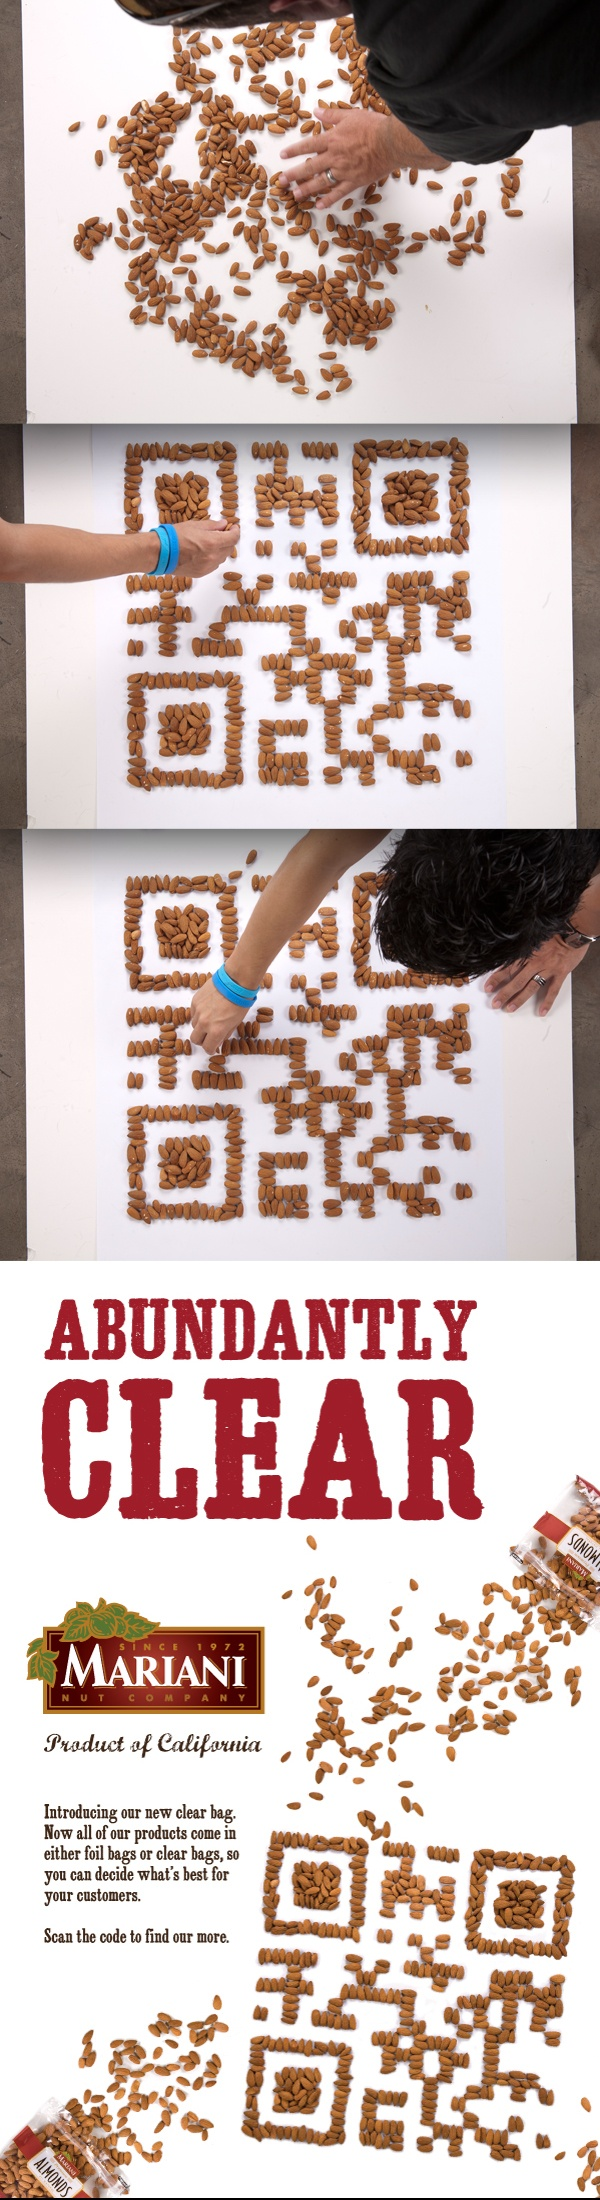 Poster design with qr code - Created A Giant Qr Code Made Out Of Real Mariani Almonds Designed The Ad And